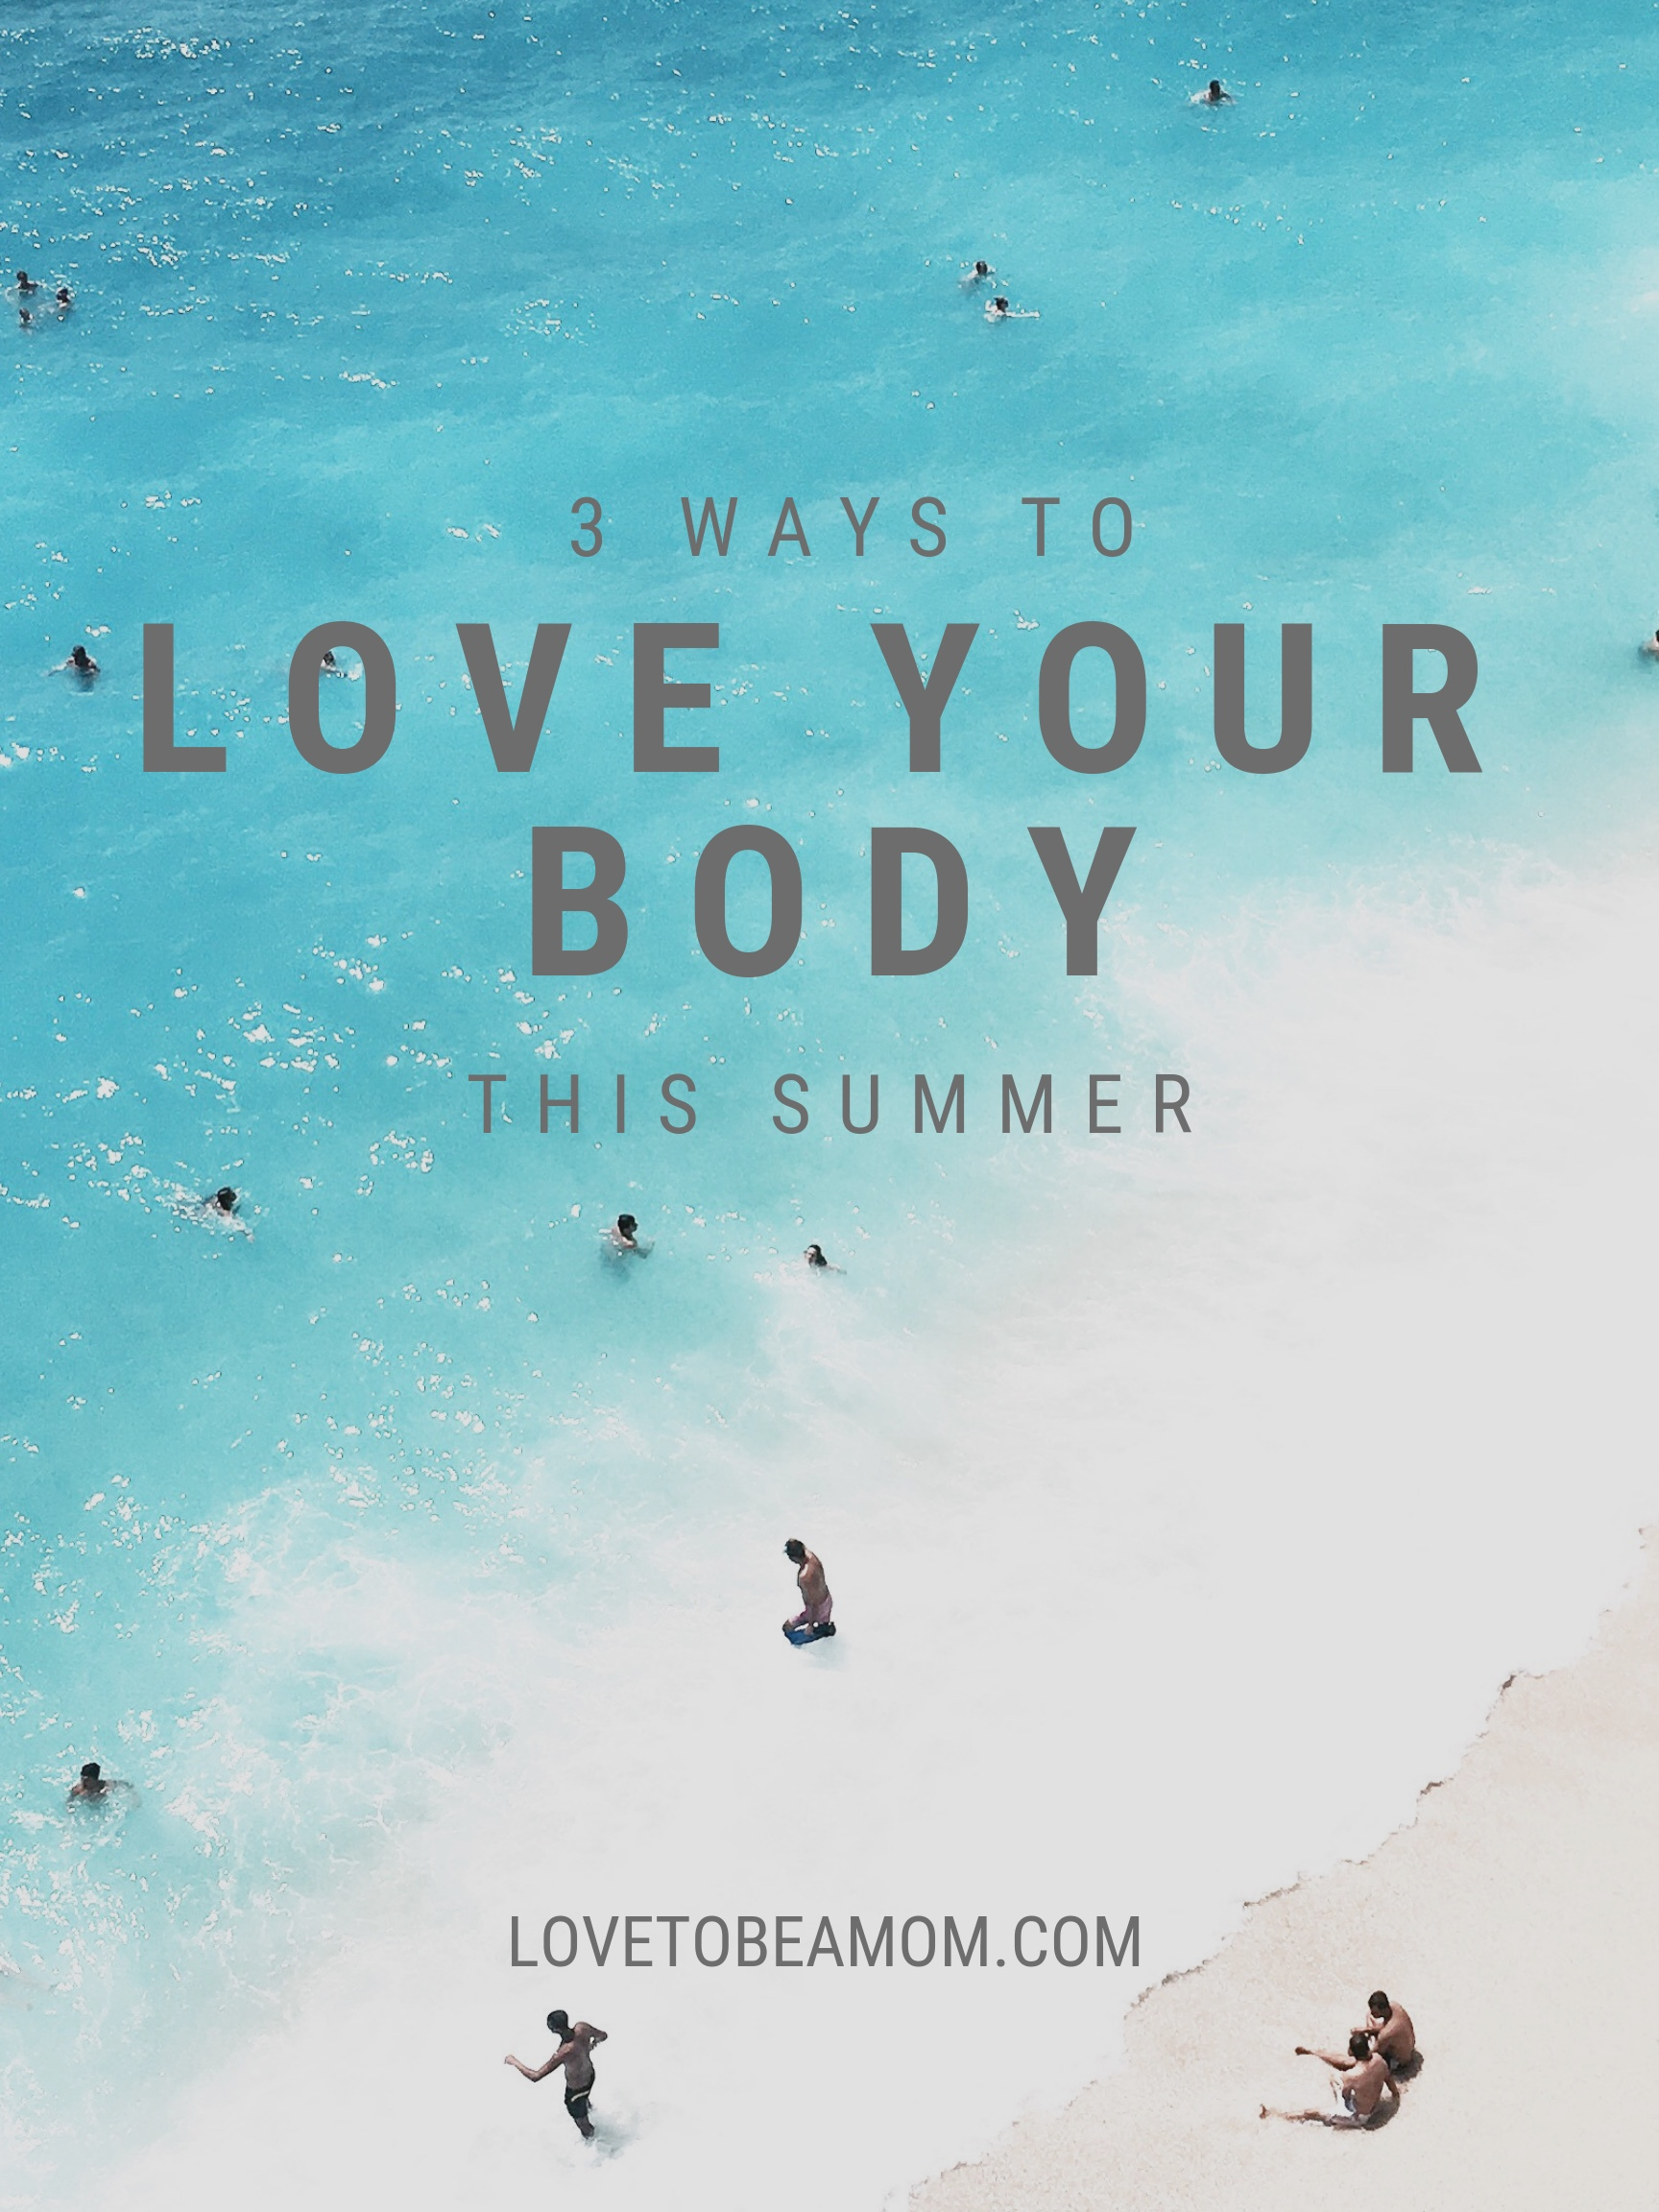 3 ways to love your body this summer